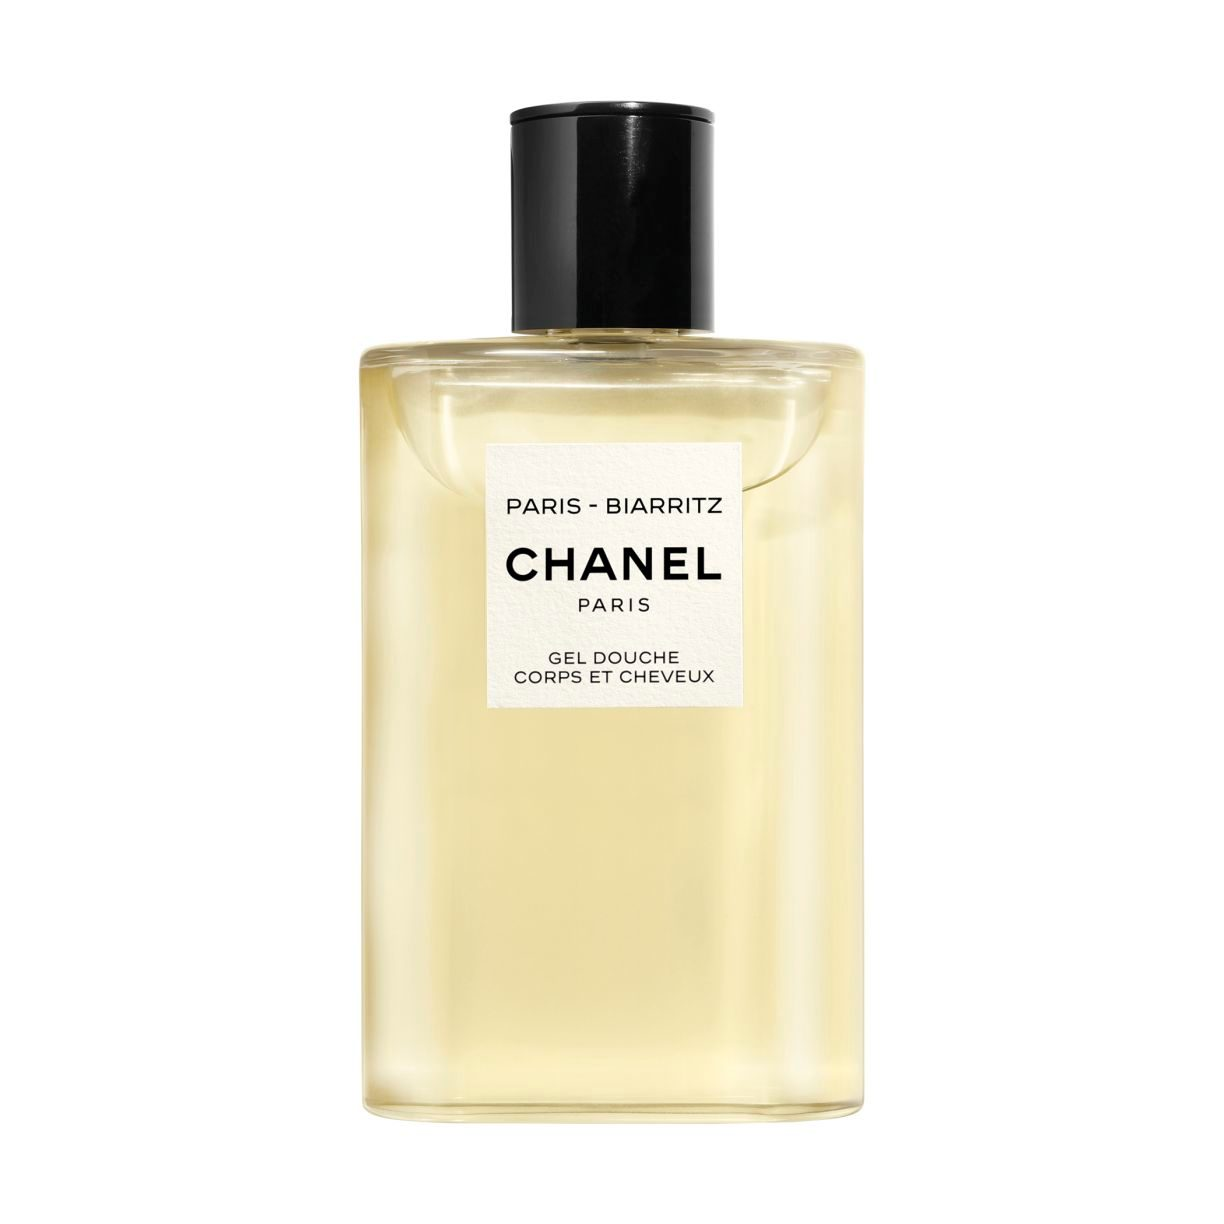 PARIS - BIARRITZ LES EAUX DE CHANEL - HAIR AND BODY SHOWER GEL 200ml